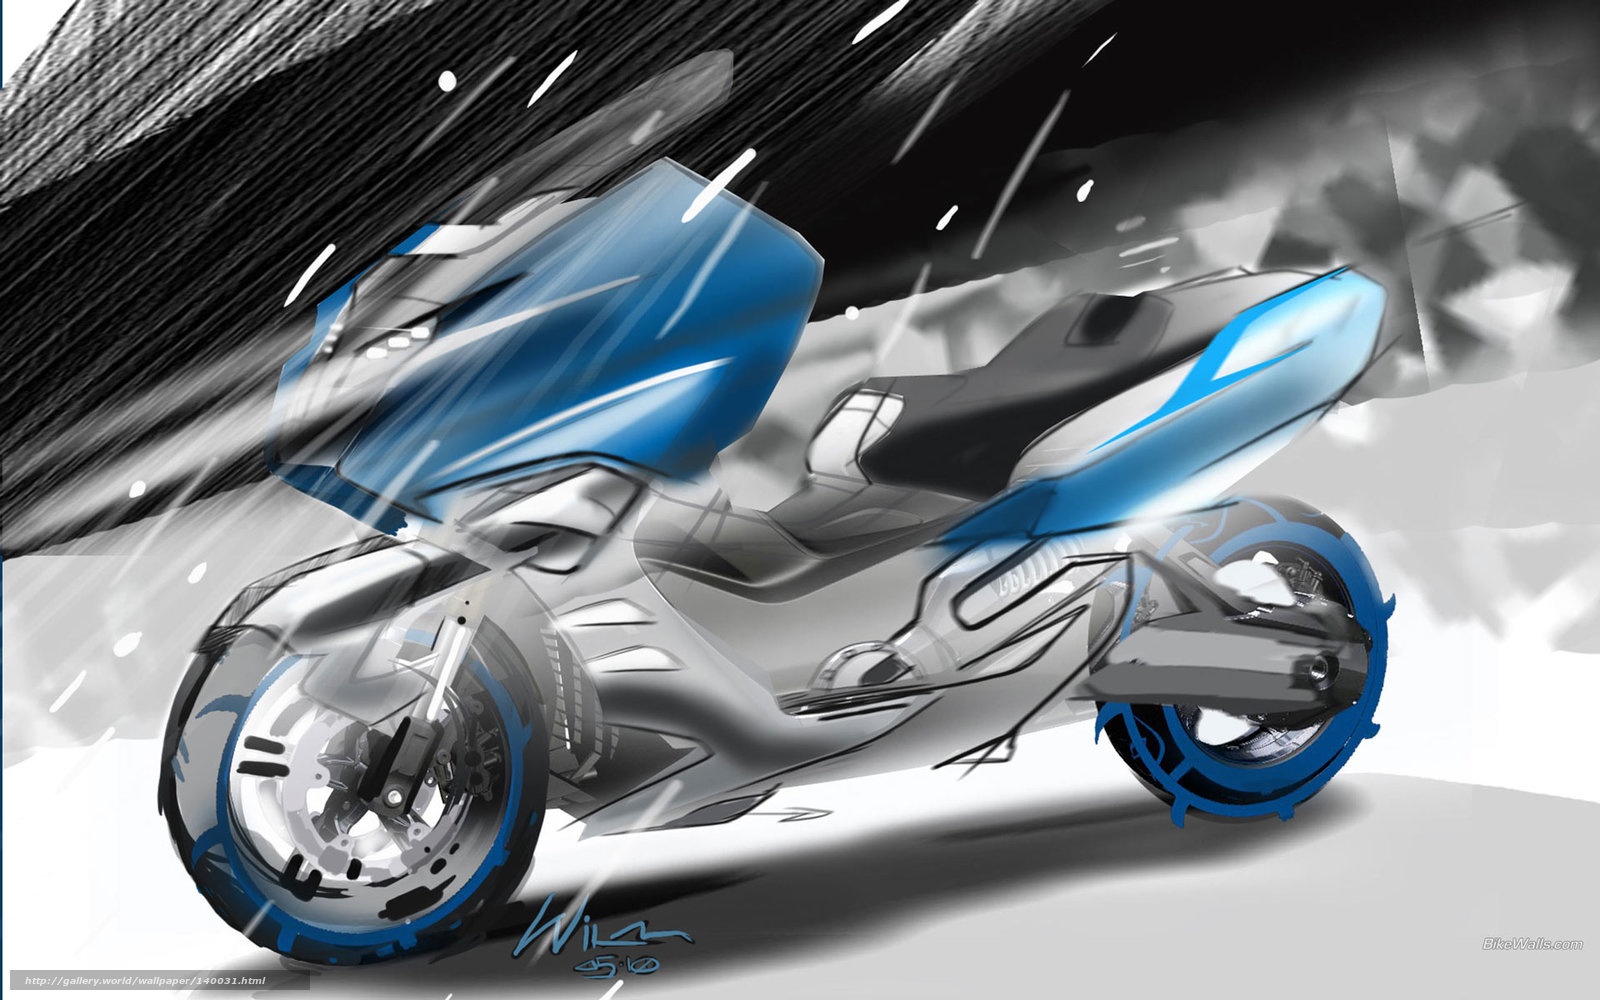 Download wallpaper BMW, Scooter, Concept C, Concept C 2010 free ...